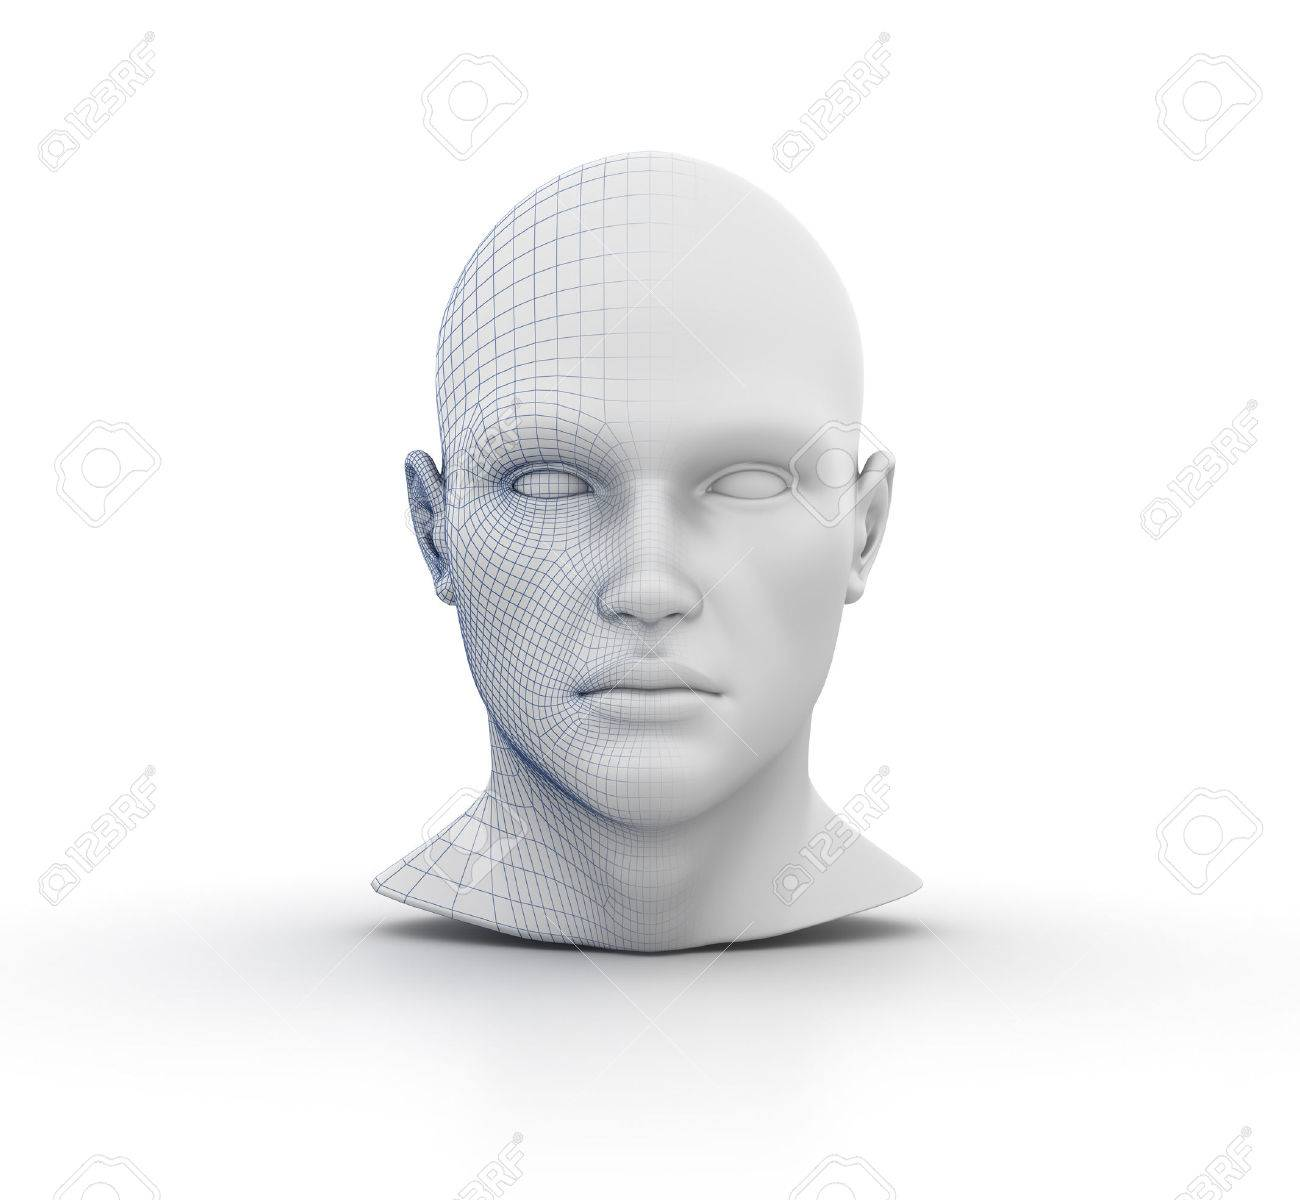 Human Head Wireframe On White Background - High Quality 3D Rendering ...